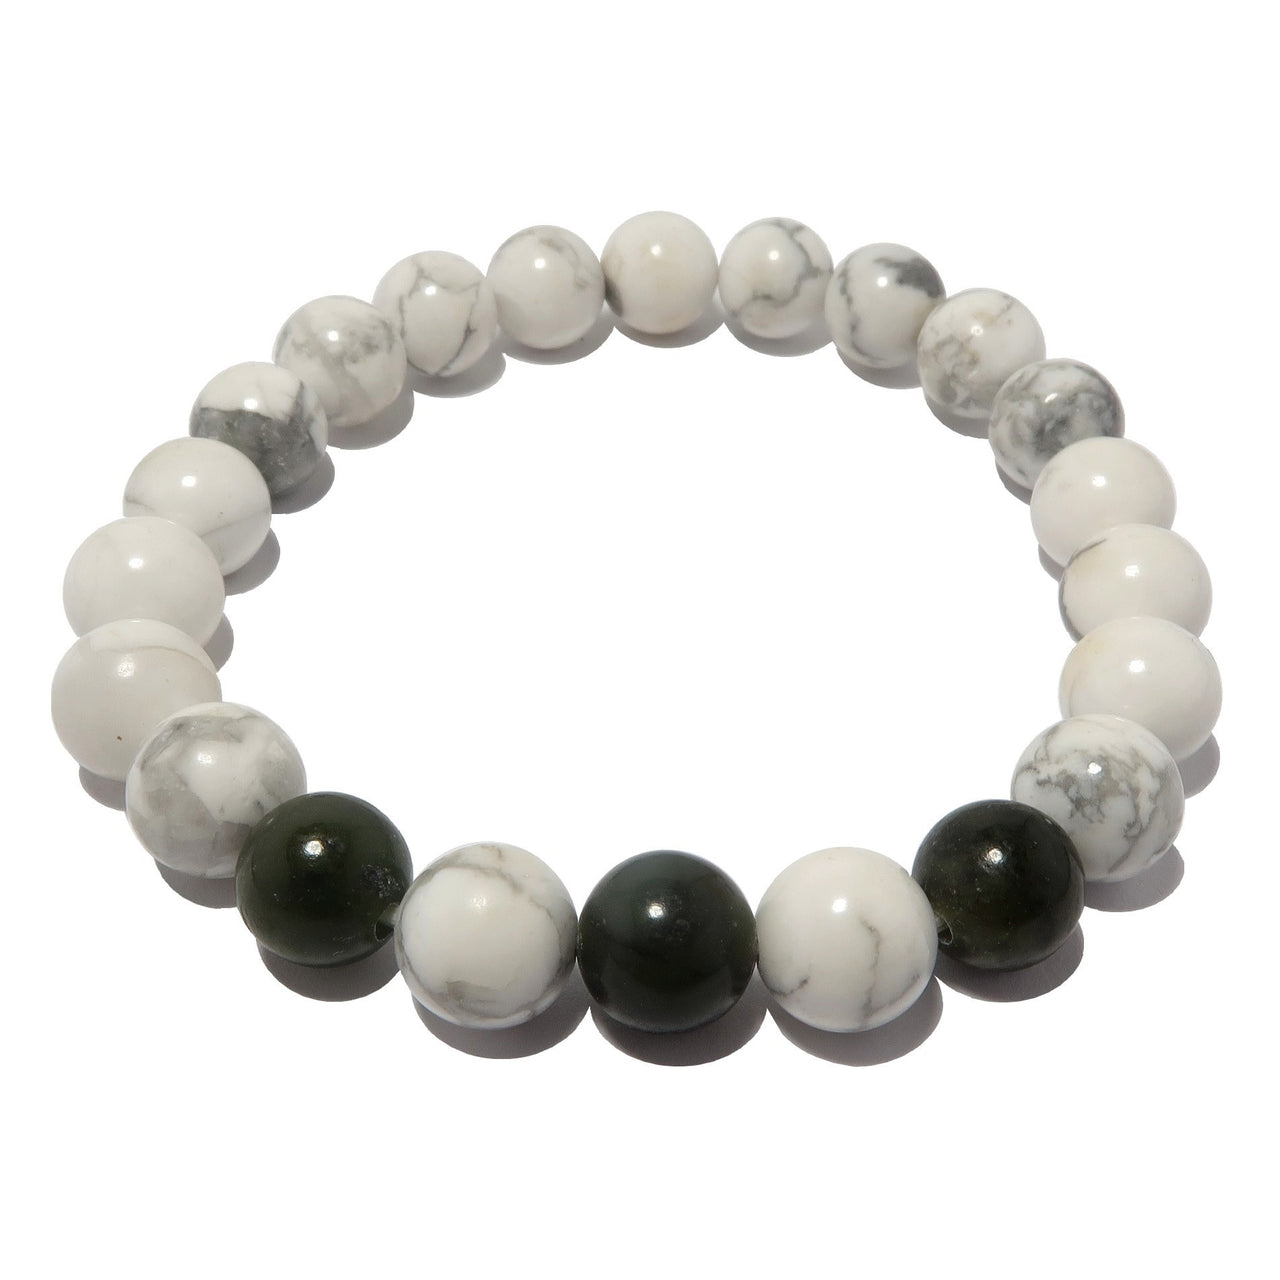 Howlite Bracelet 7mm Boutique Round Gemstone Stretch White Stone Green Nephrite Jade B03